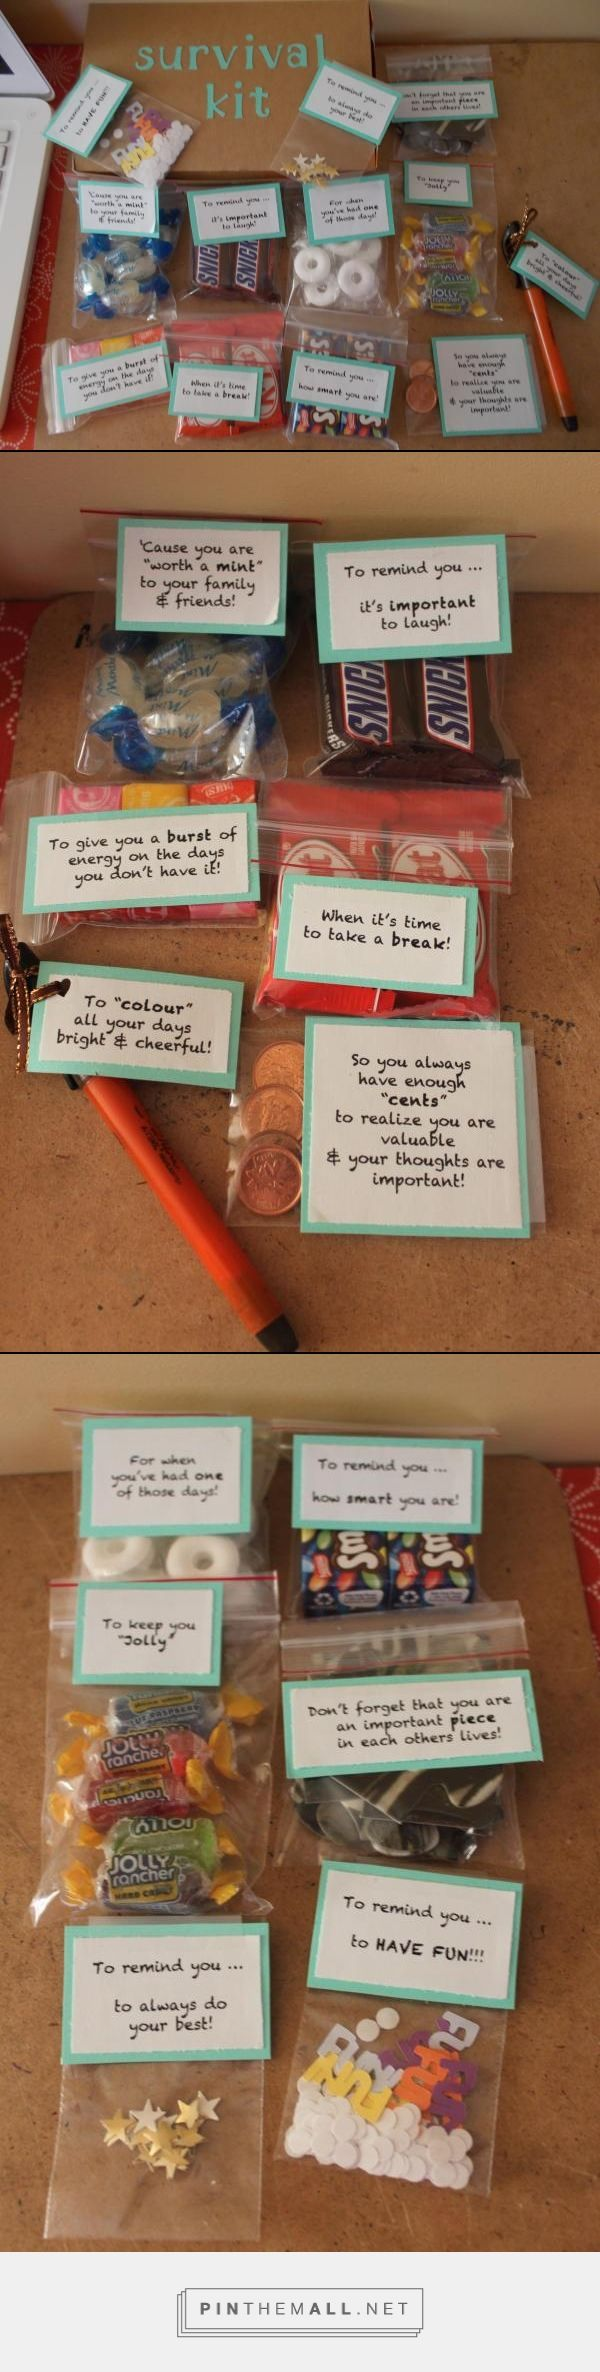 UNIVERSITY SURVIVAL KIT - Created this using a ideas from different survival kits posted on Pinterest.